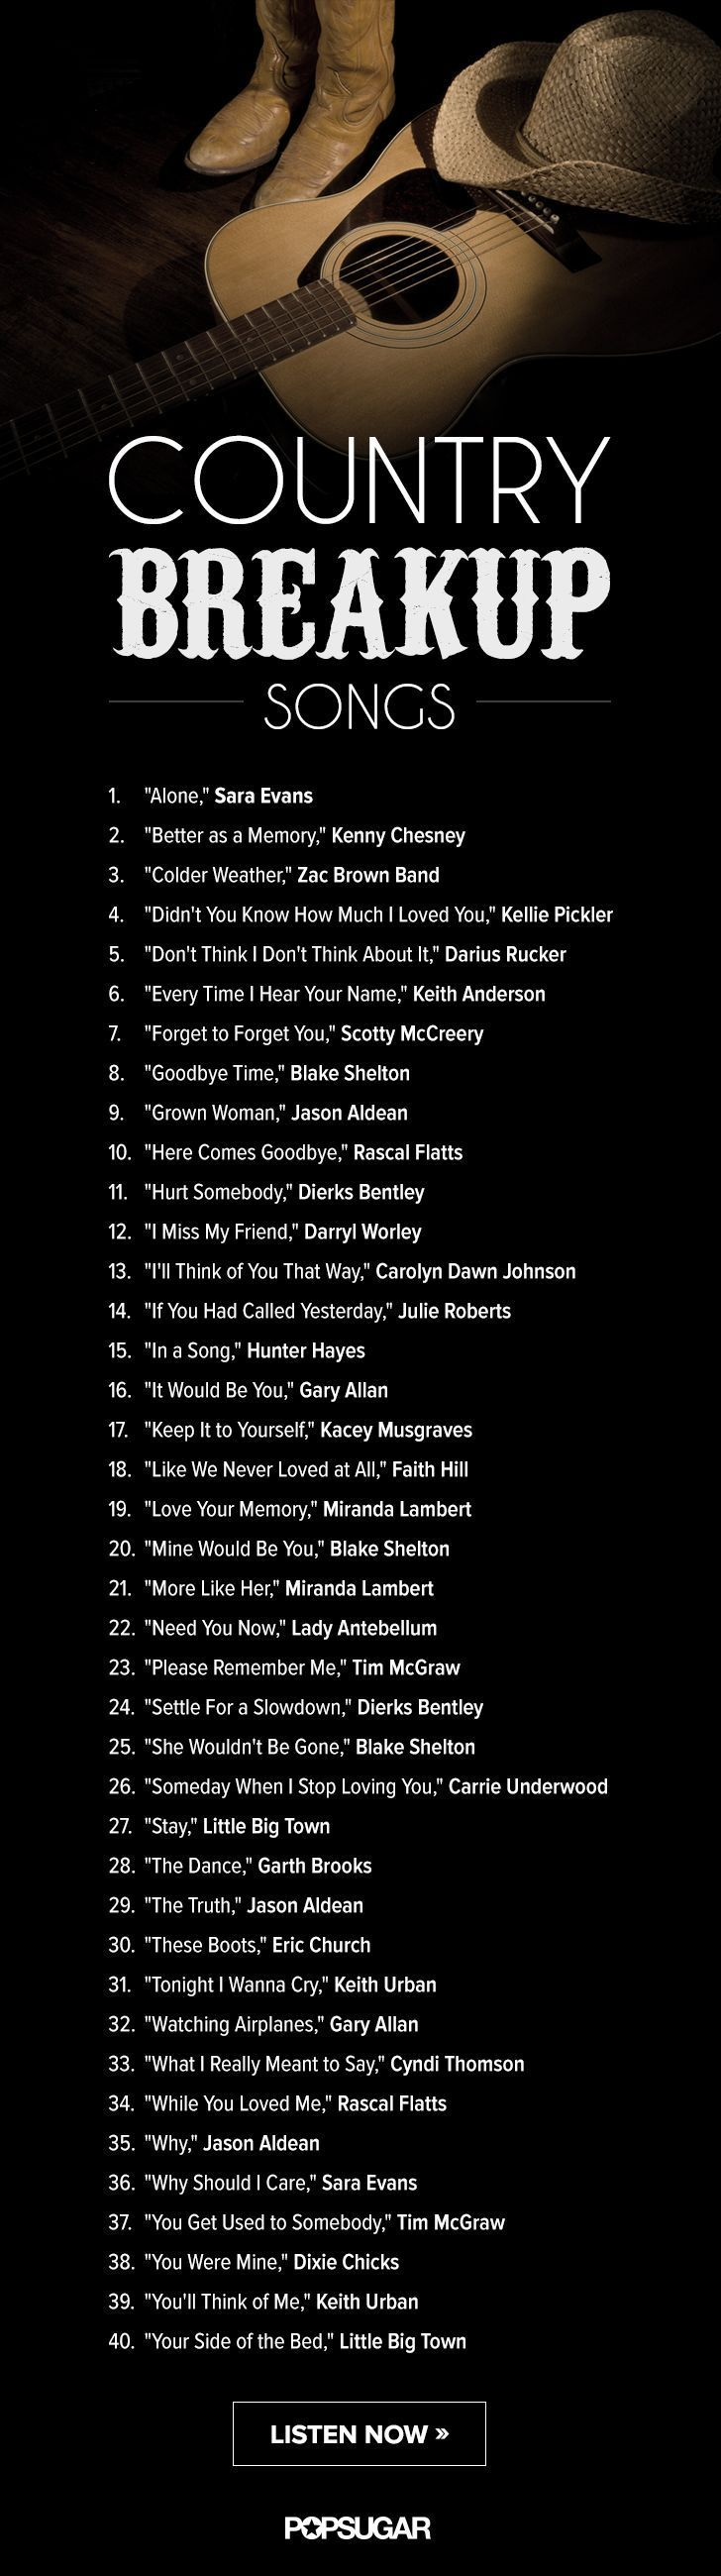 Country rock songs 2016